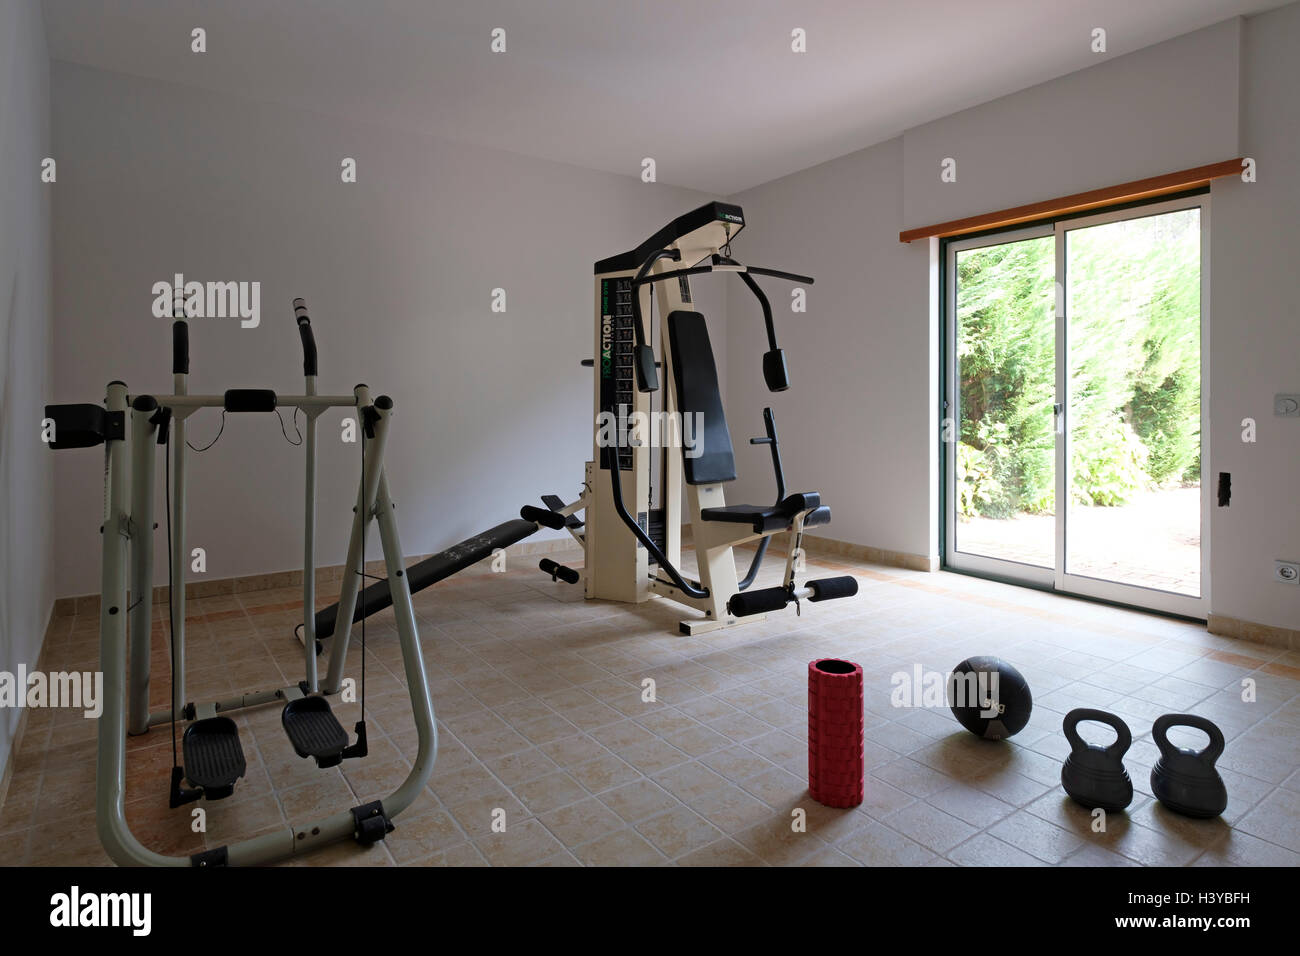 Aparatos Fitness Para Casa Exercise Machines And Kettlebells On A Home Gym Stock